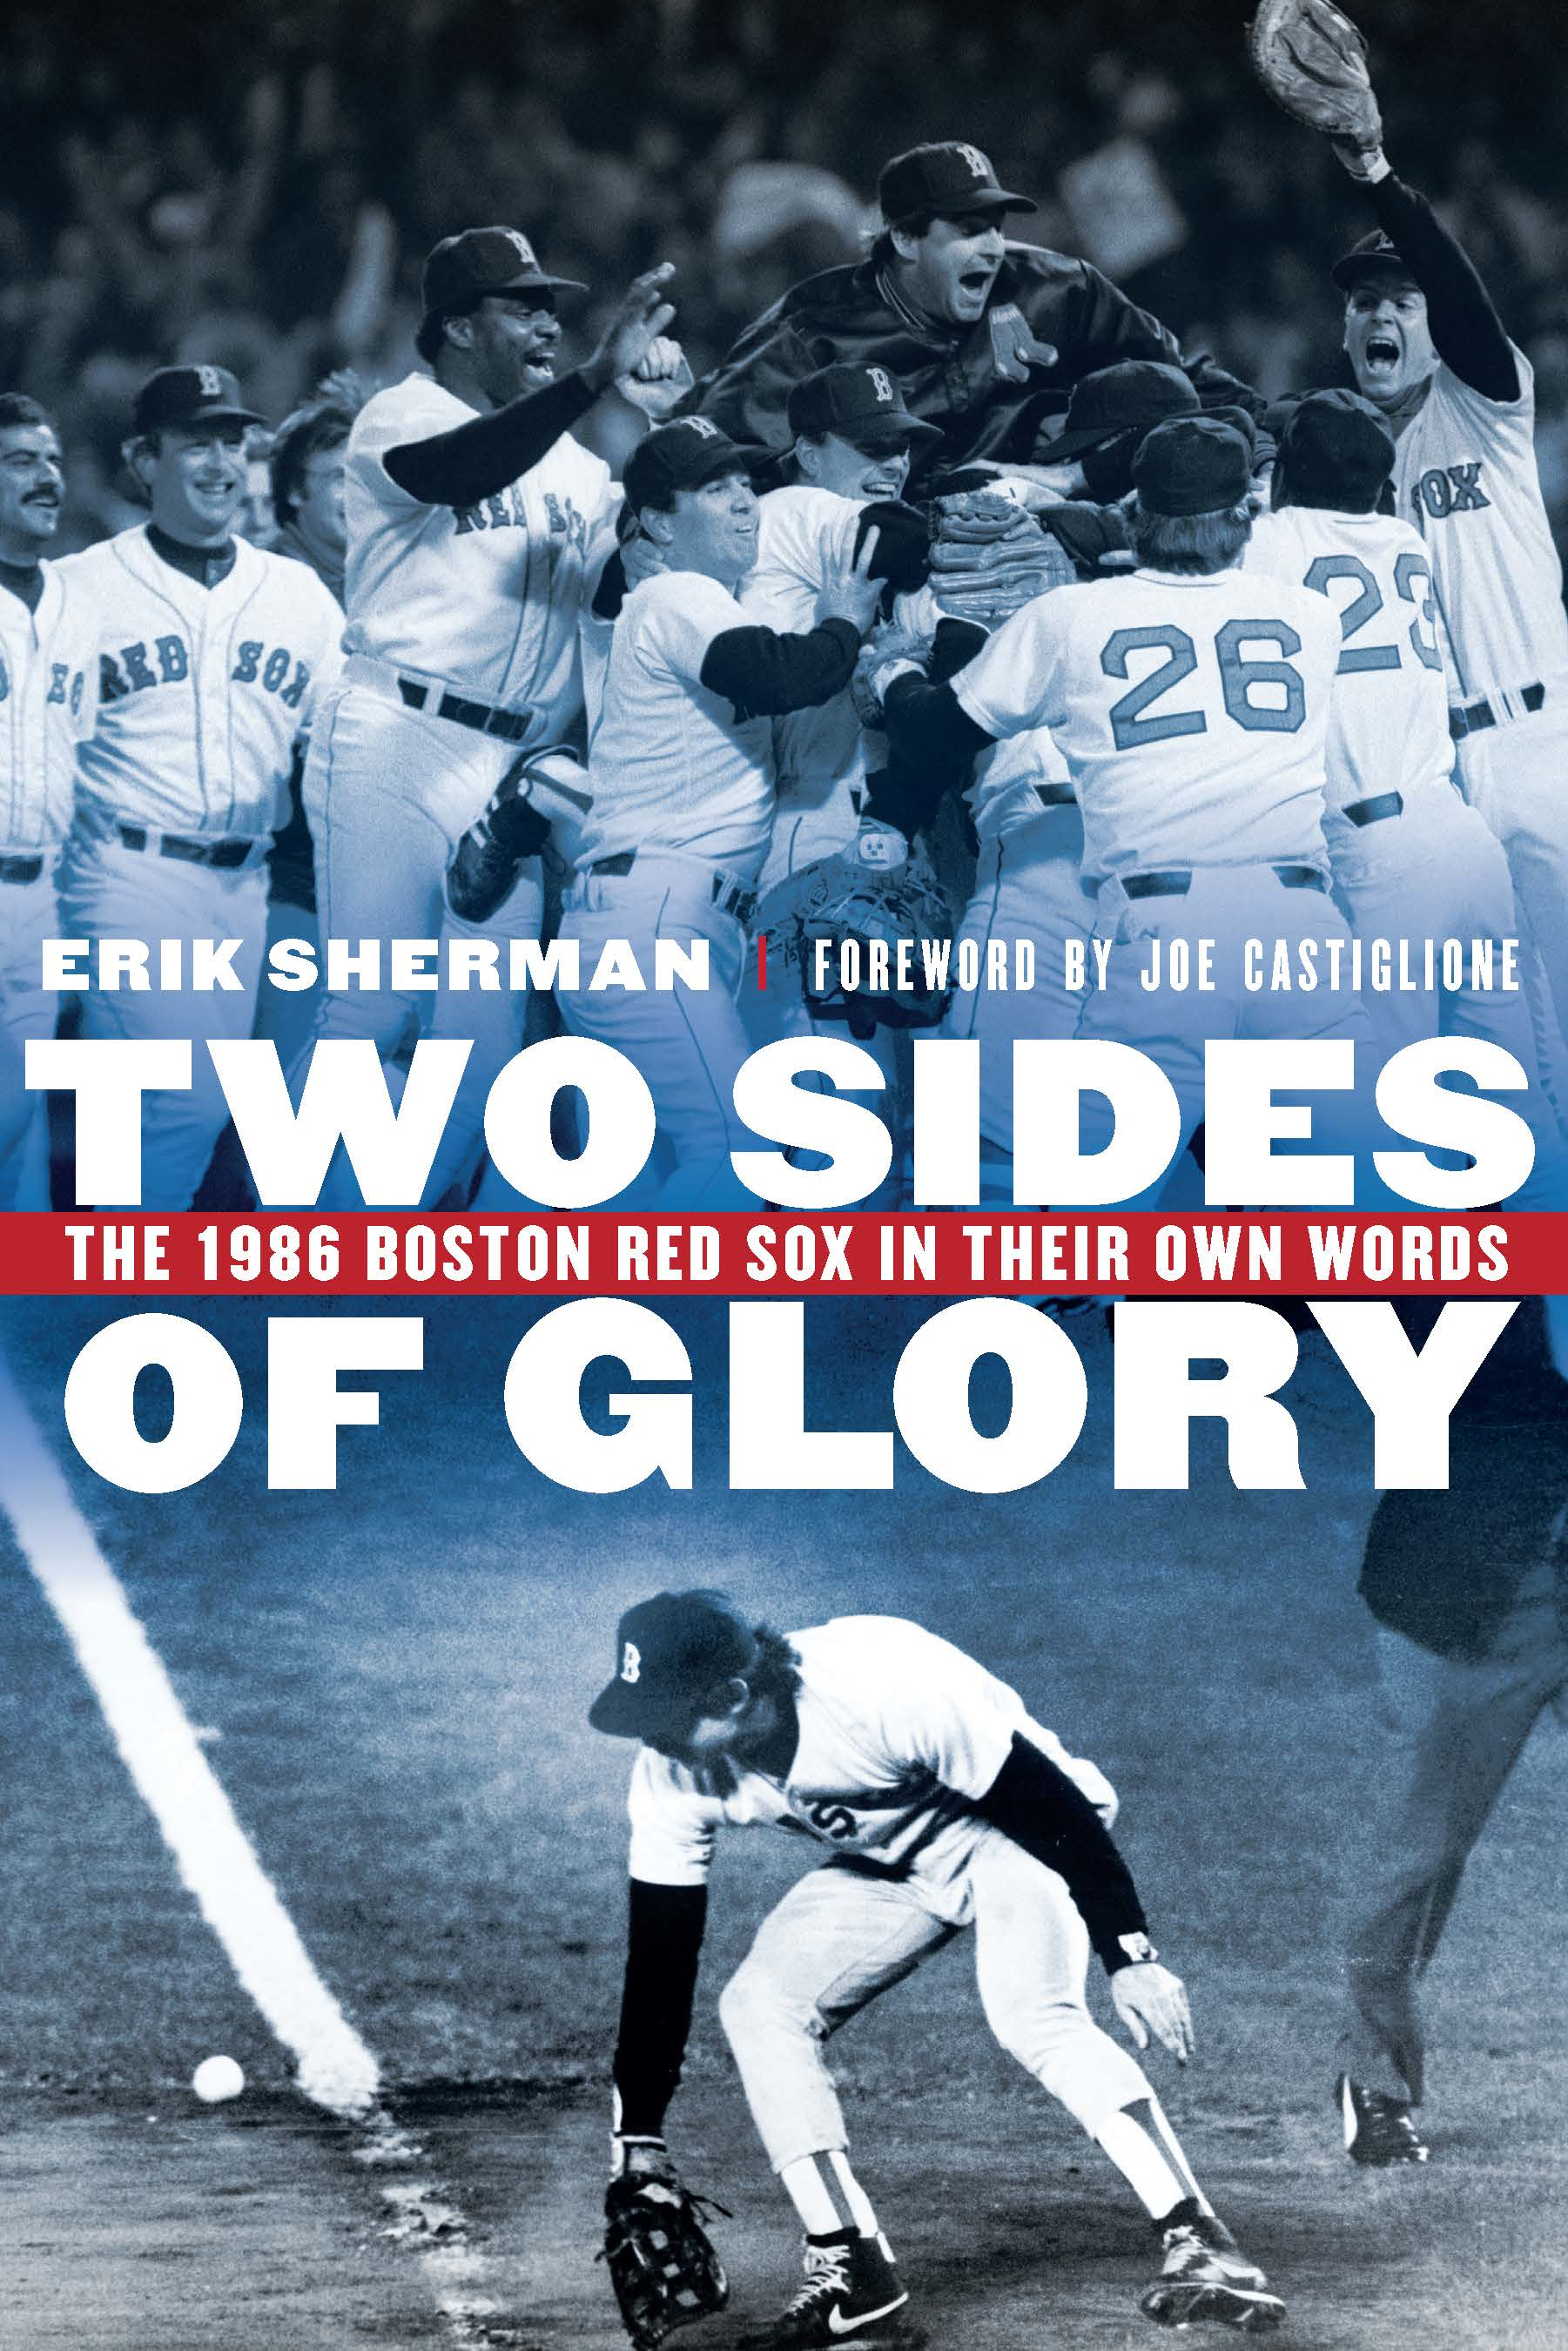 Two Sides of Glory The 1986 Boston Red Sox in Their Own Words